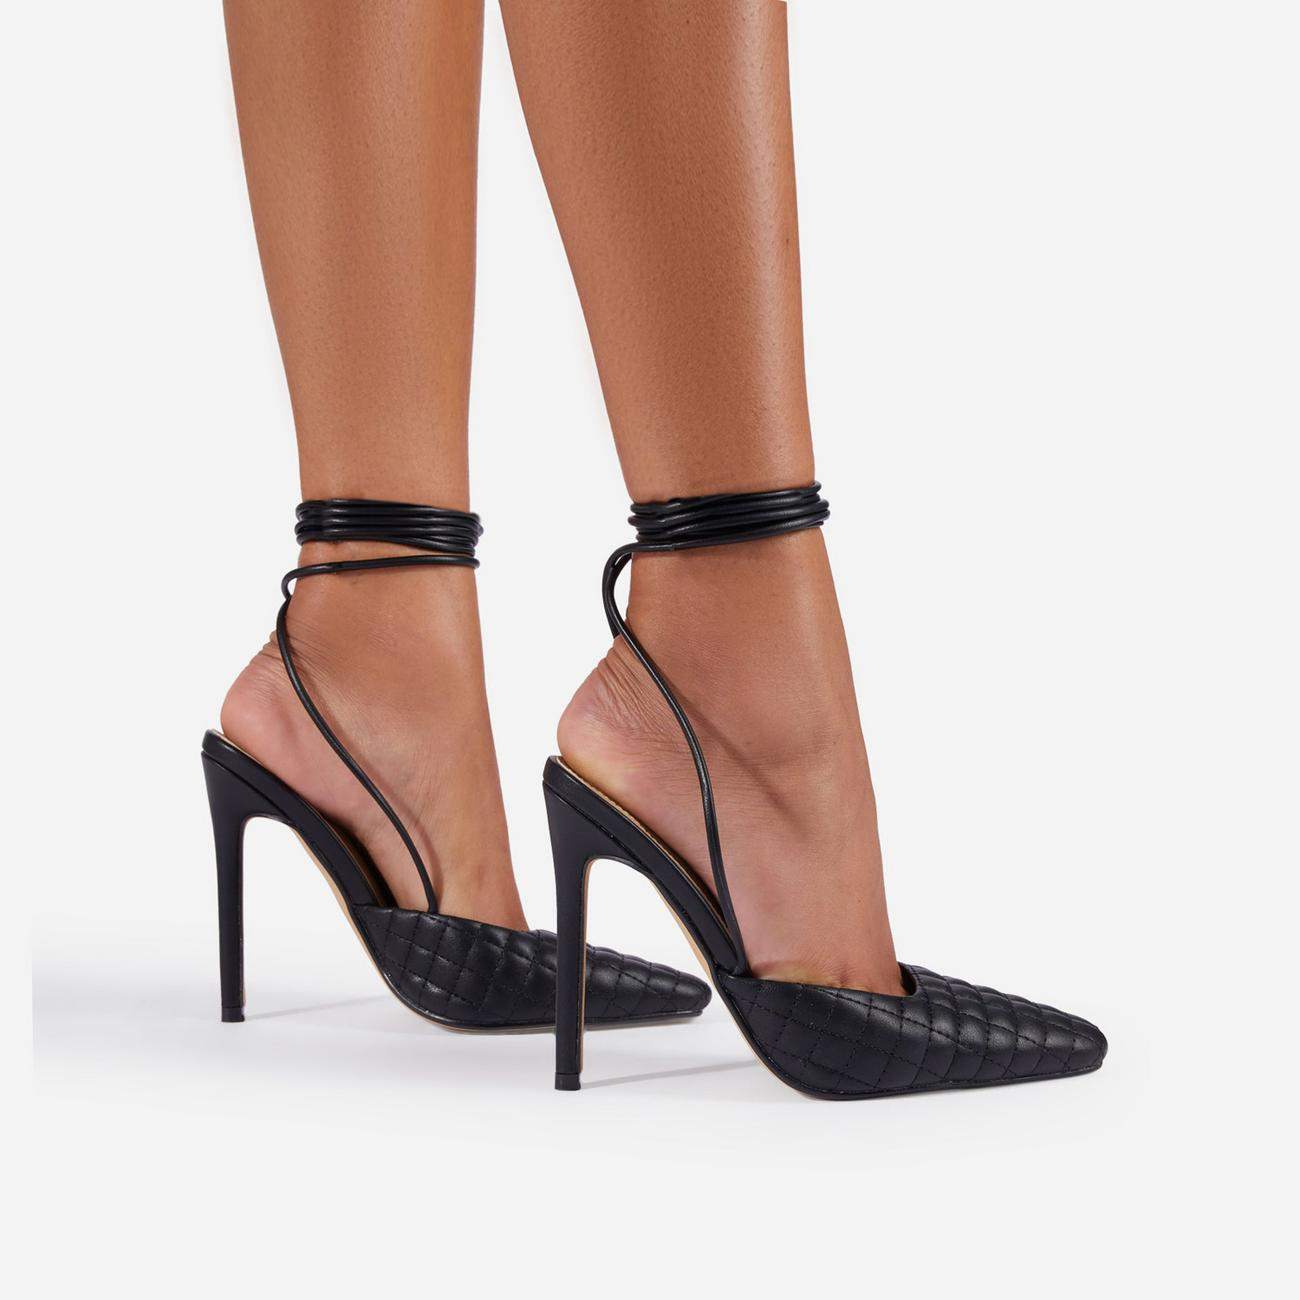 Lifted Lace Up Quilted Pointed Toe Court Heel In Black Faux Leather Image 1